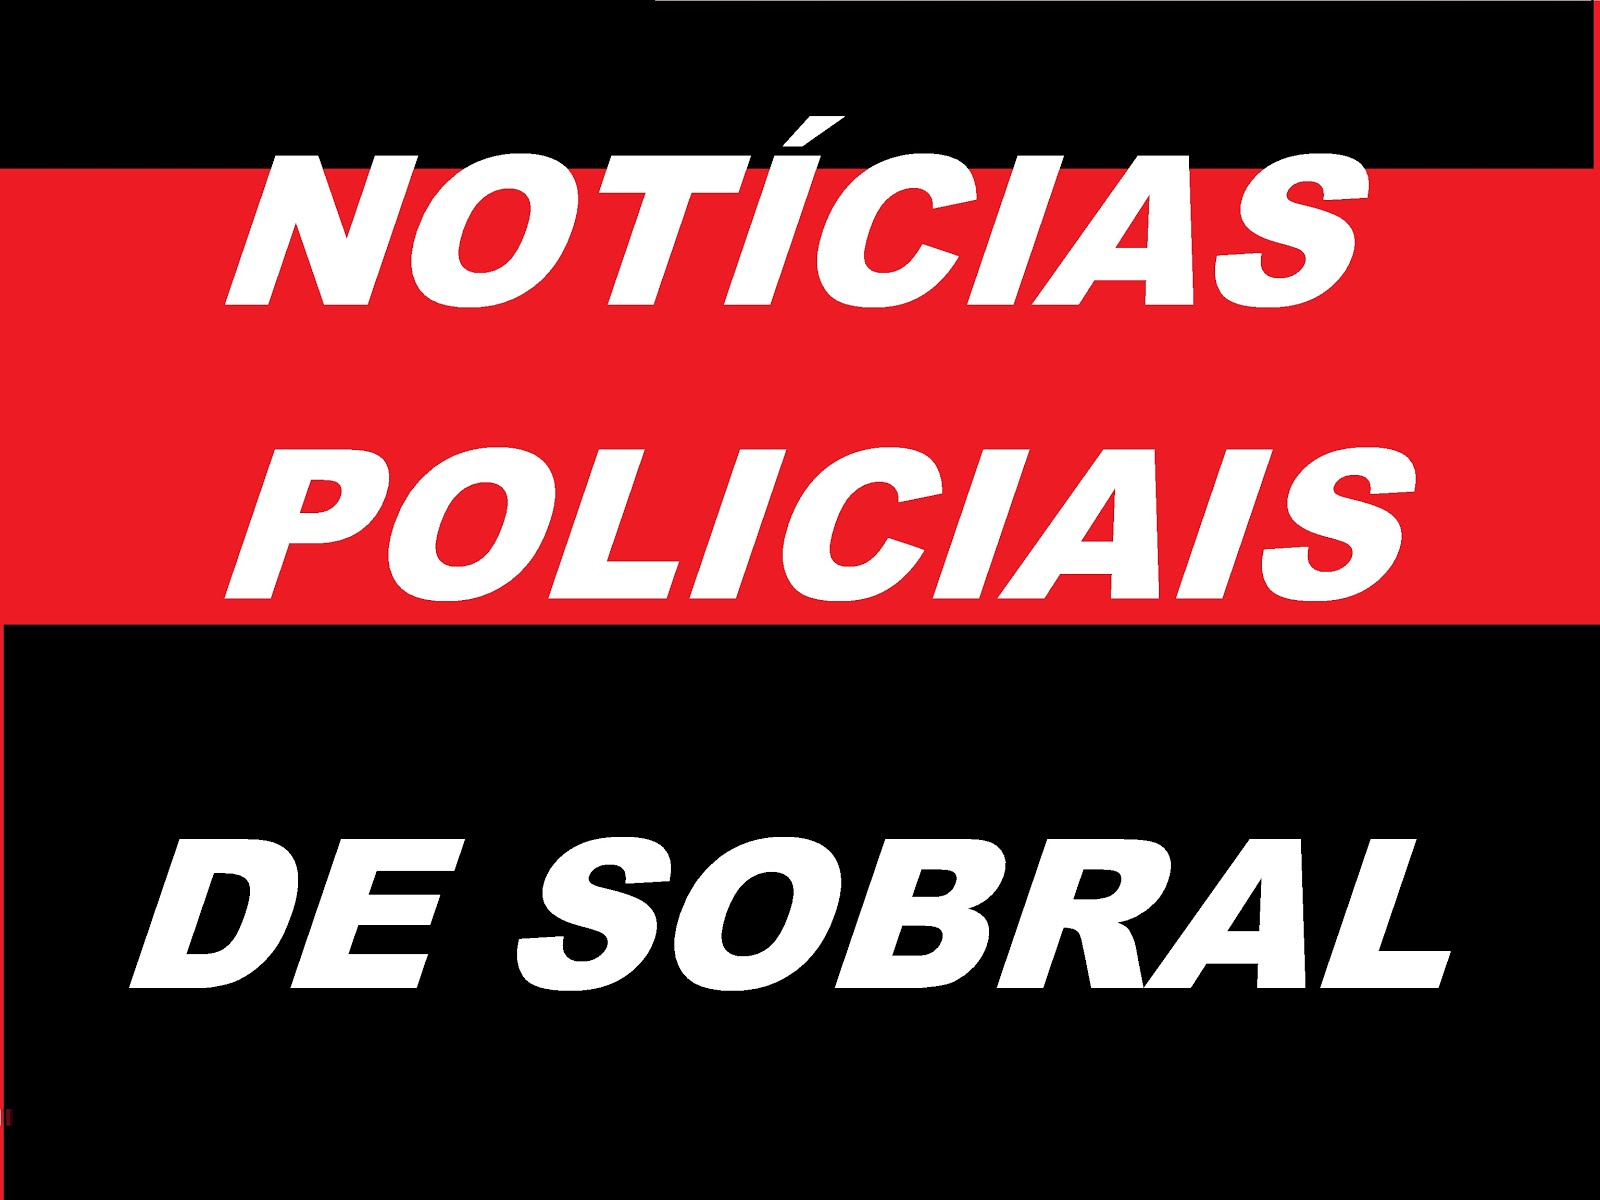 AS ULTIMAS NOTICIAS POLICIAIS DE SOBRAL